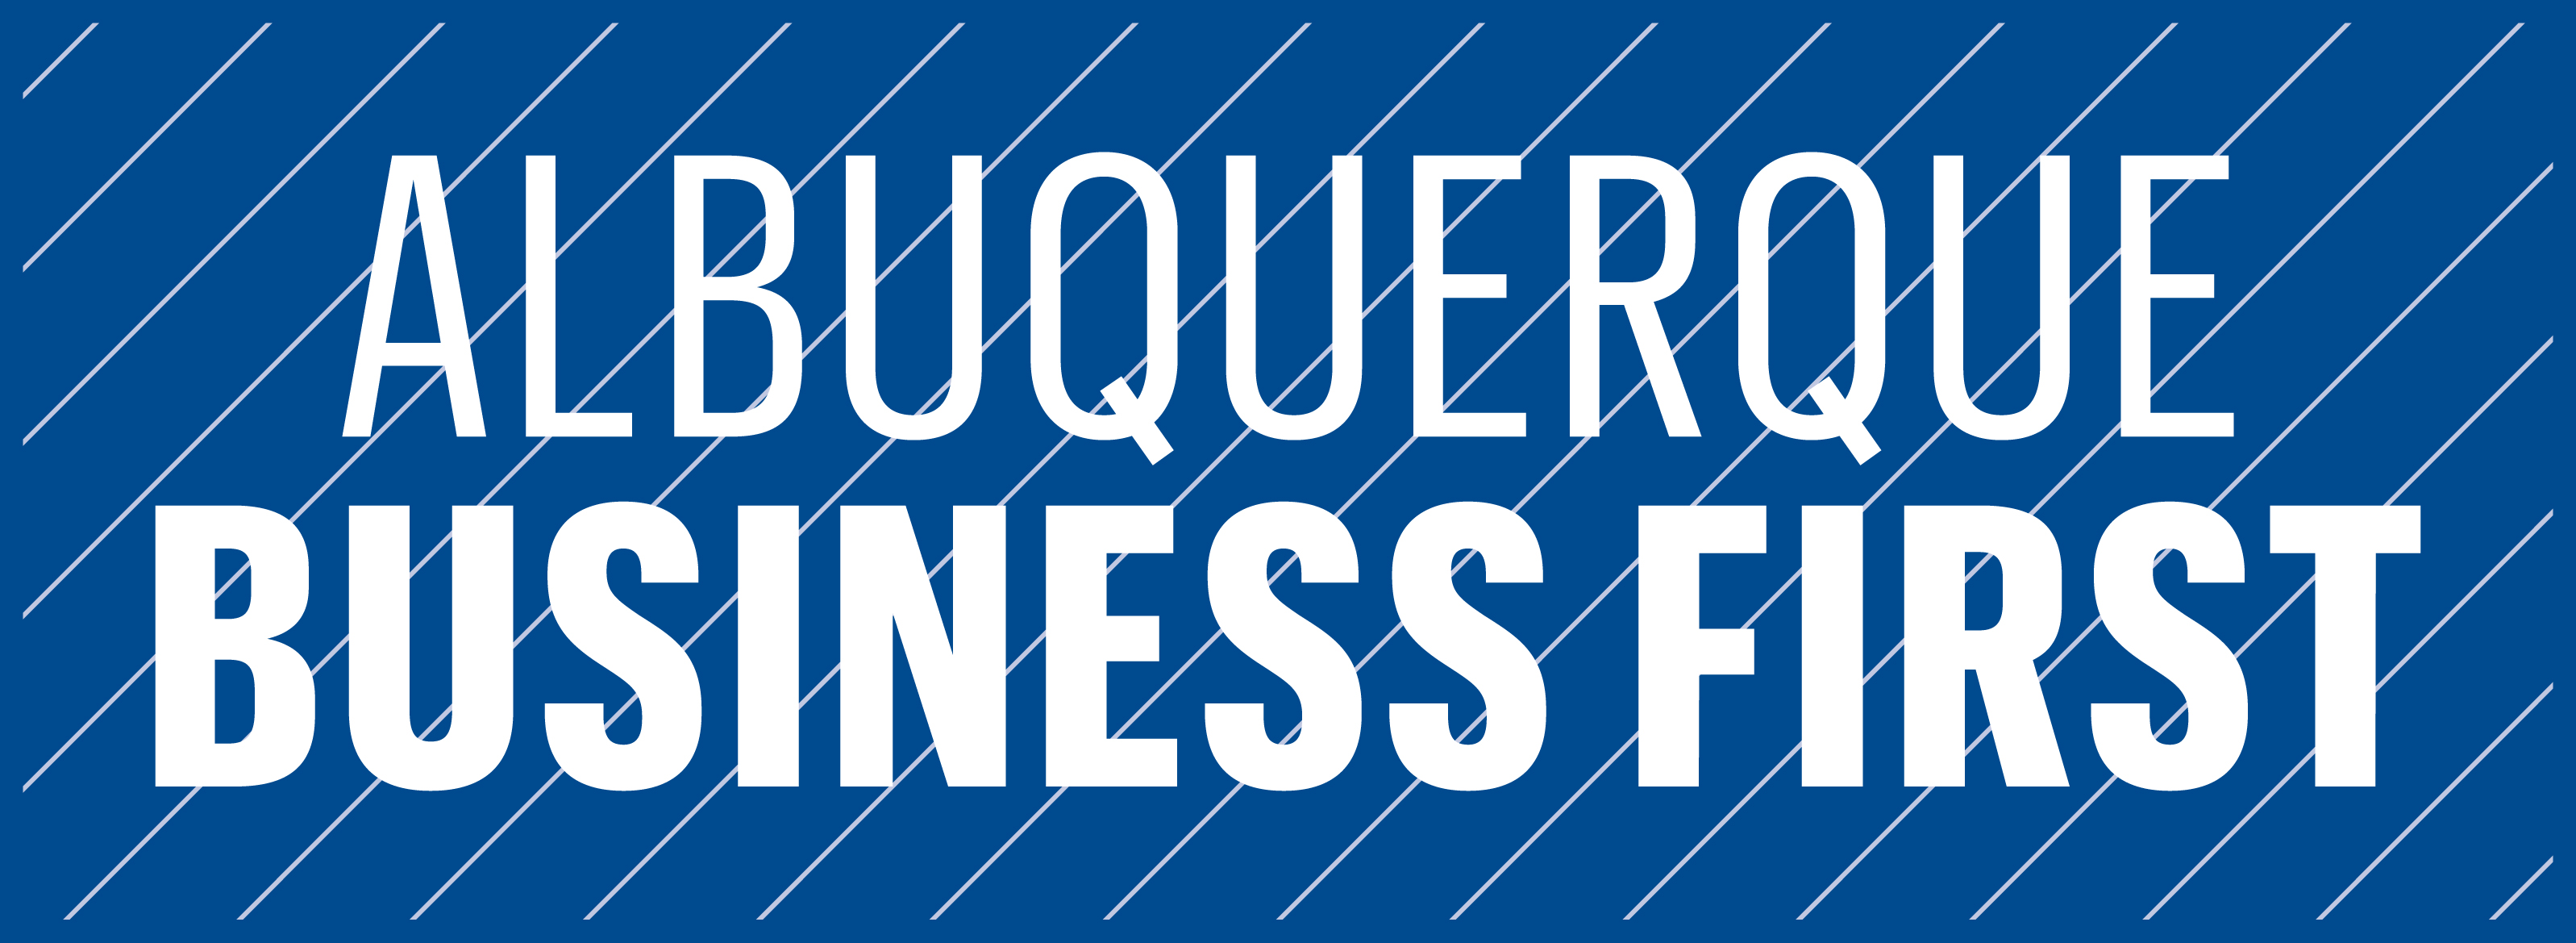 Albuquerque Business First Logo